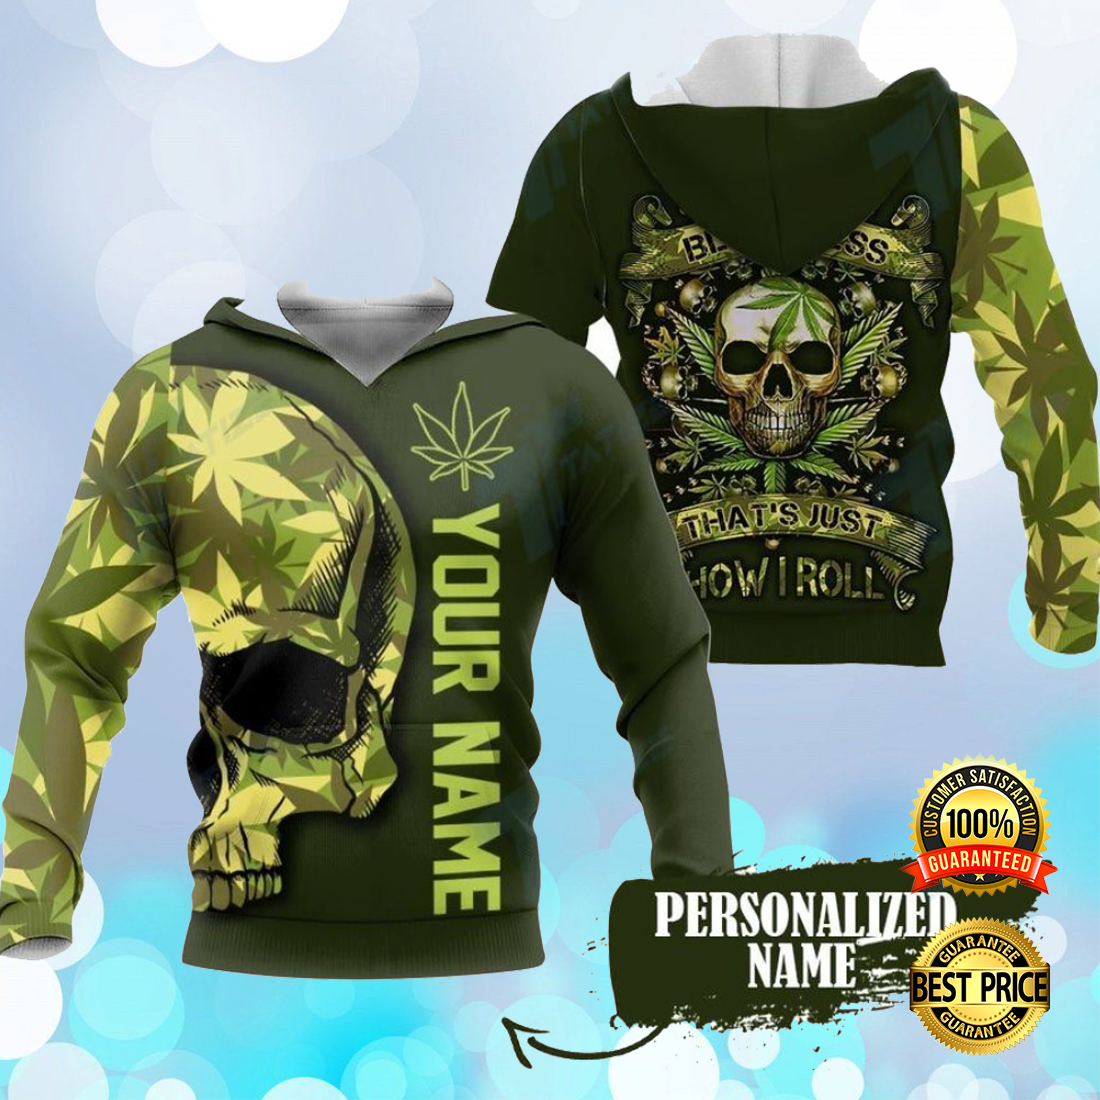 [Limited] Personalized Skull Weed Sorry For My Bluntness That's Just How I Roll All Over Printed 3D Hoodie